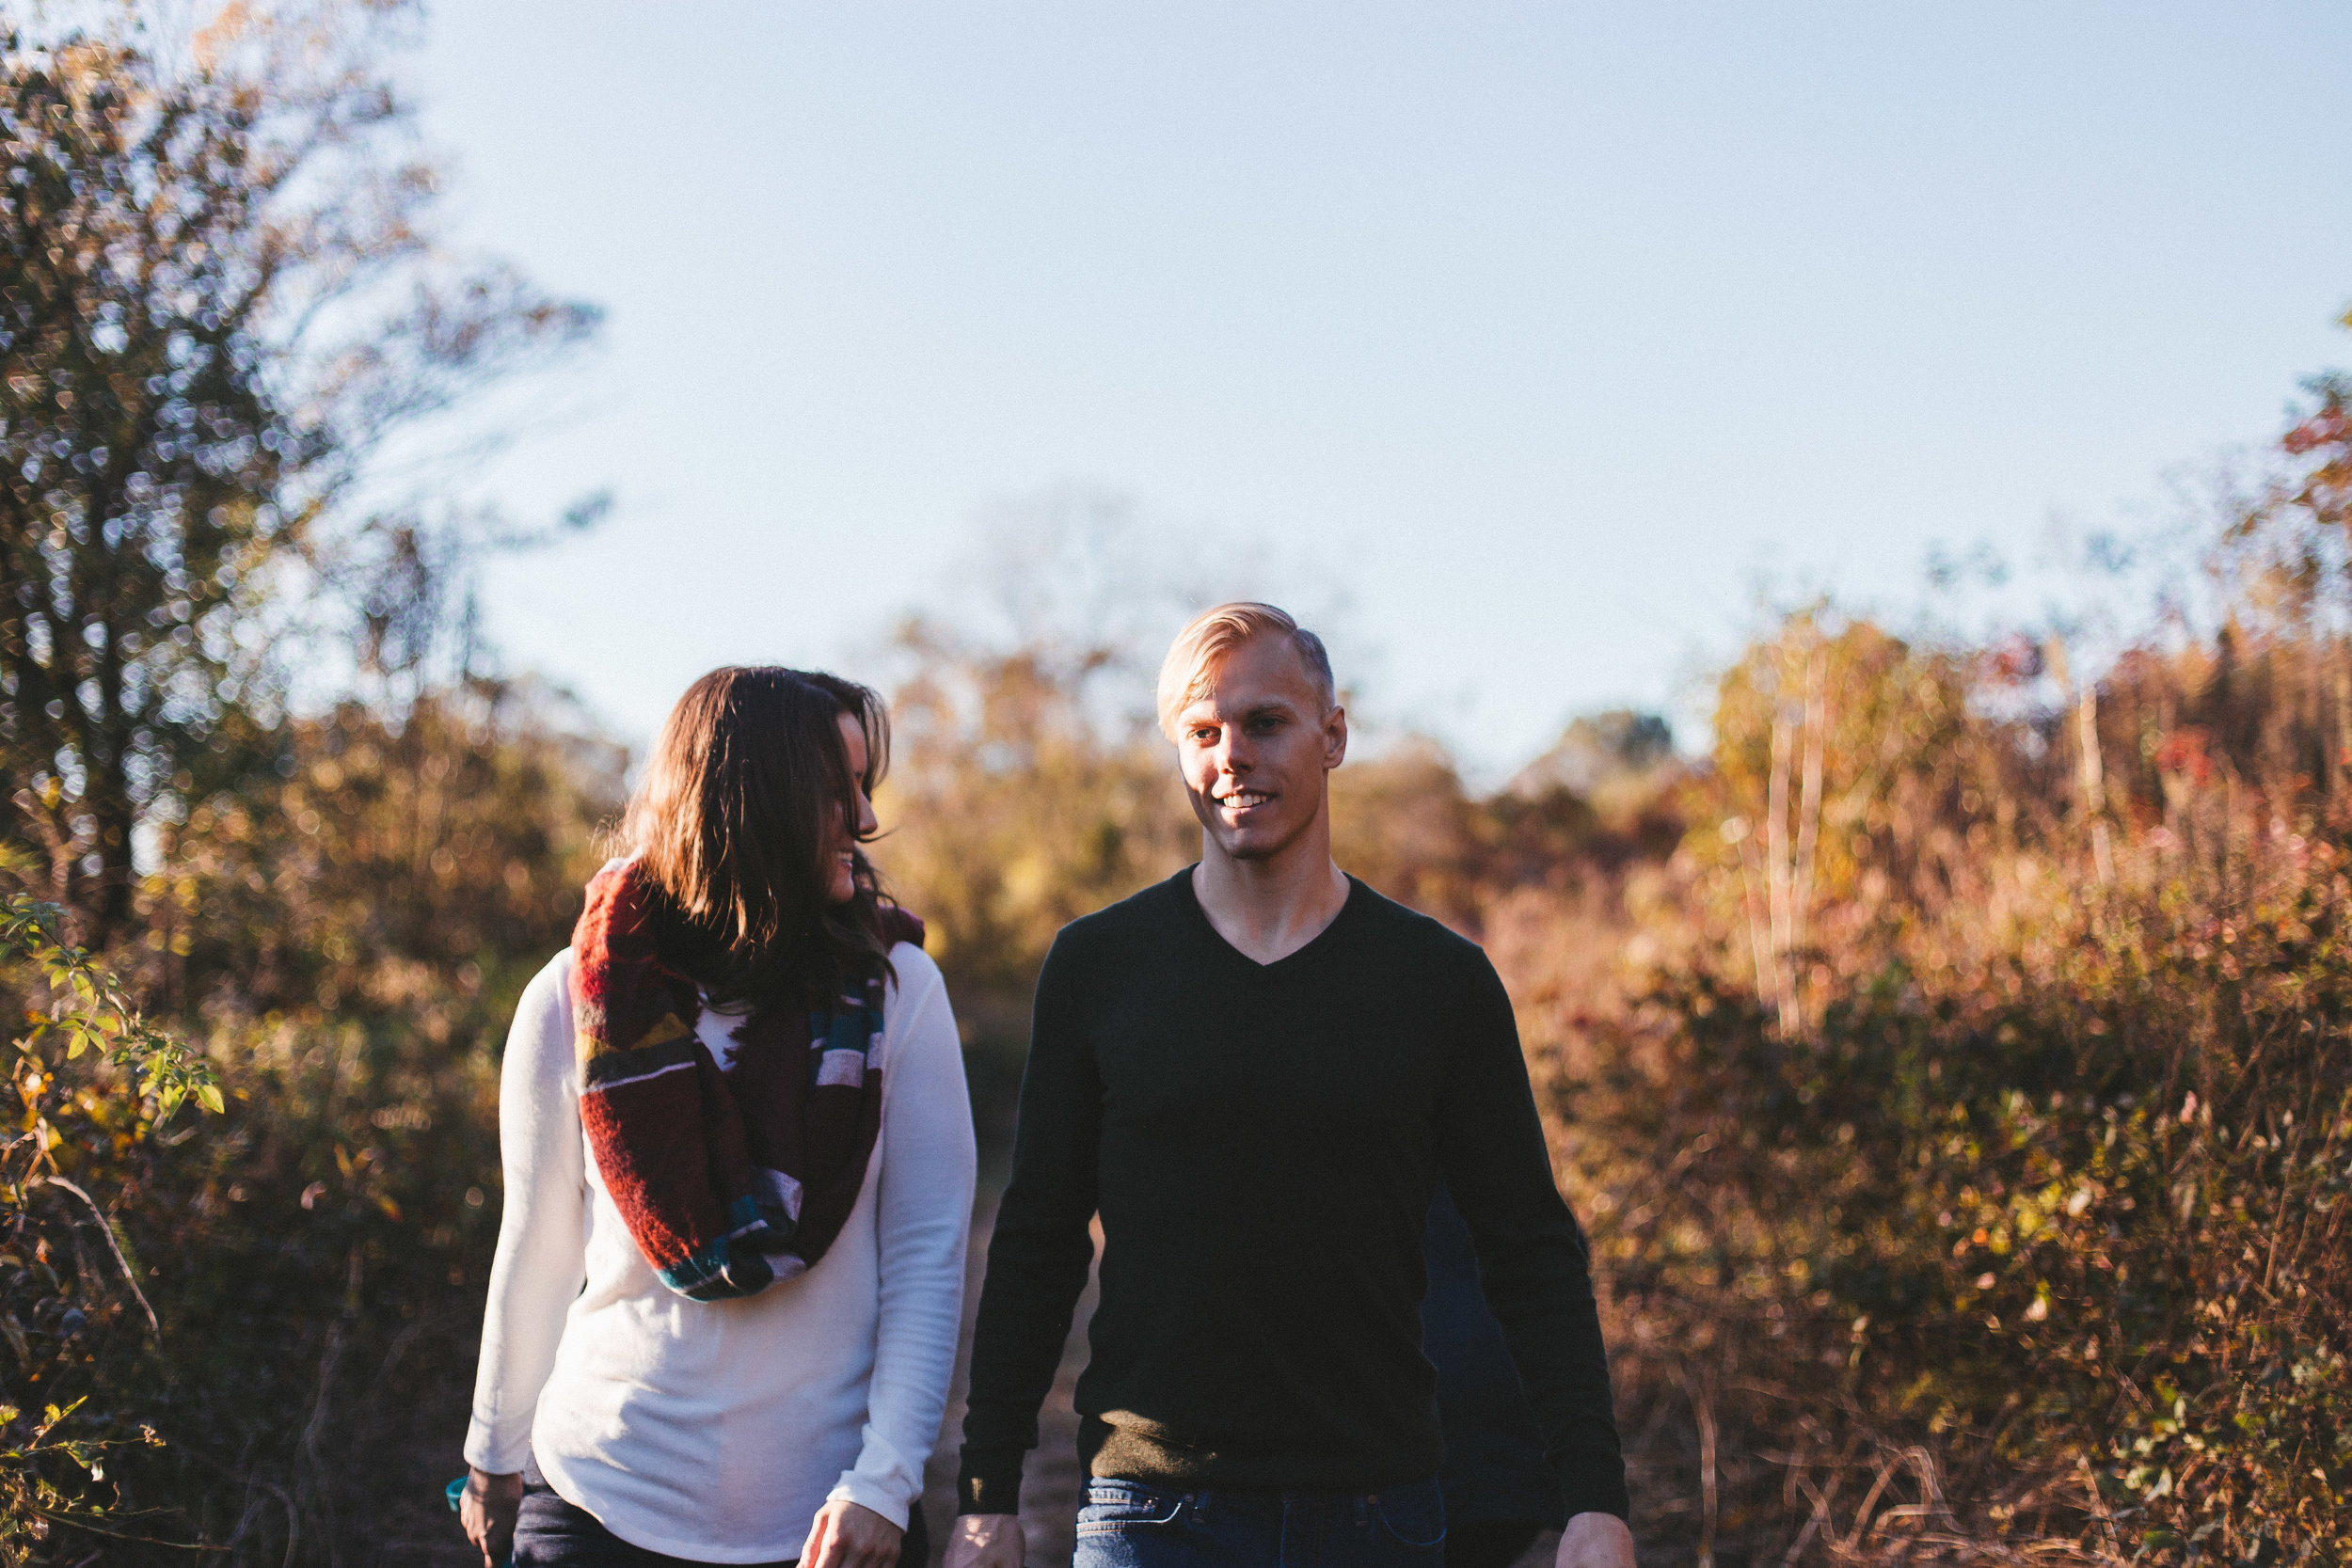 Lindsey & Bert Engagement Shoot 11.5.16-138.jpg